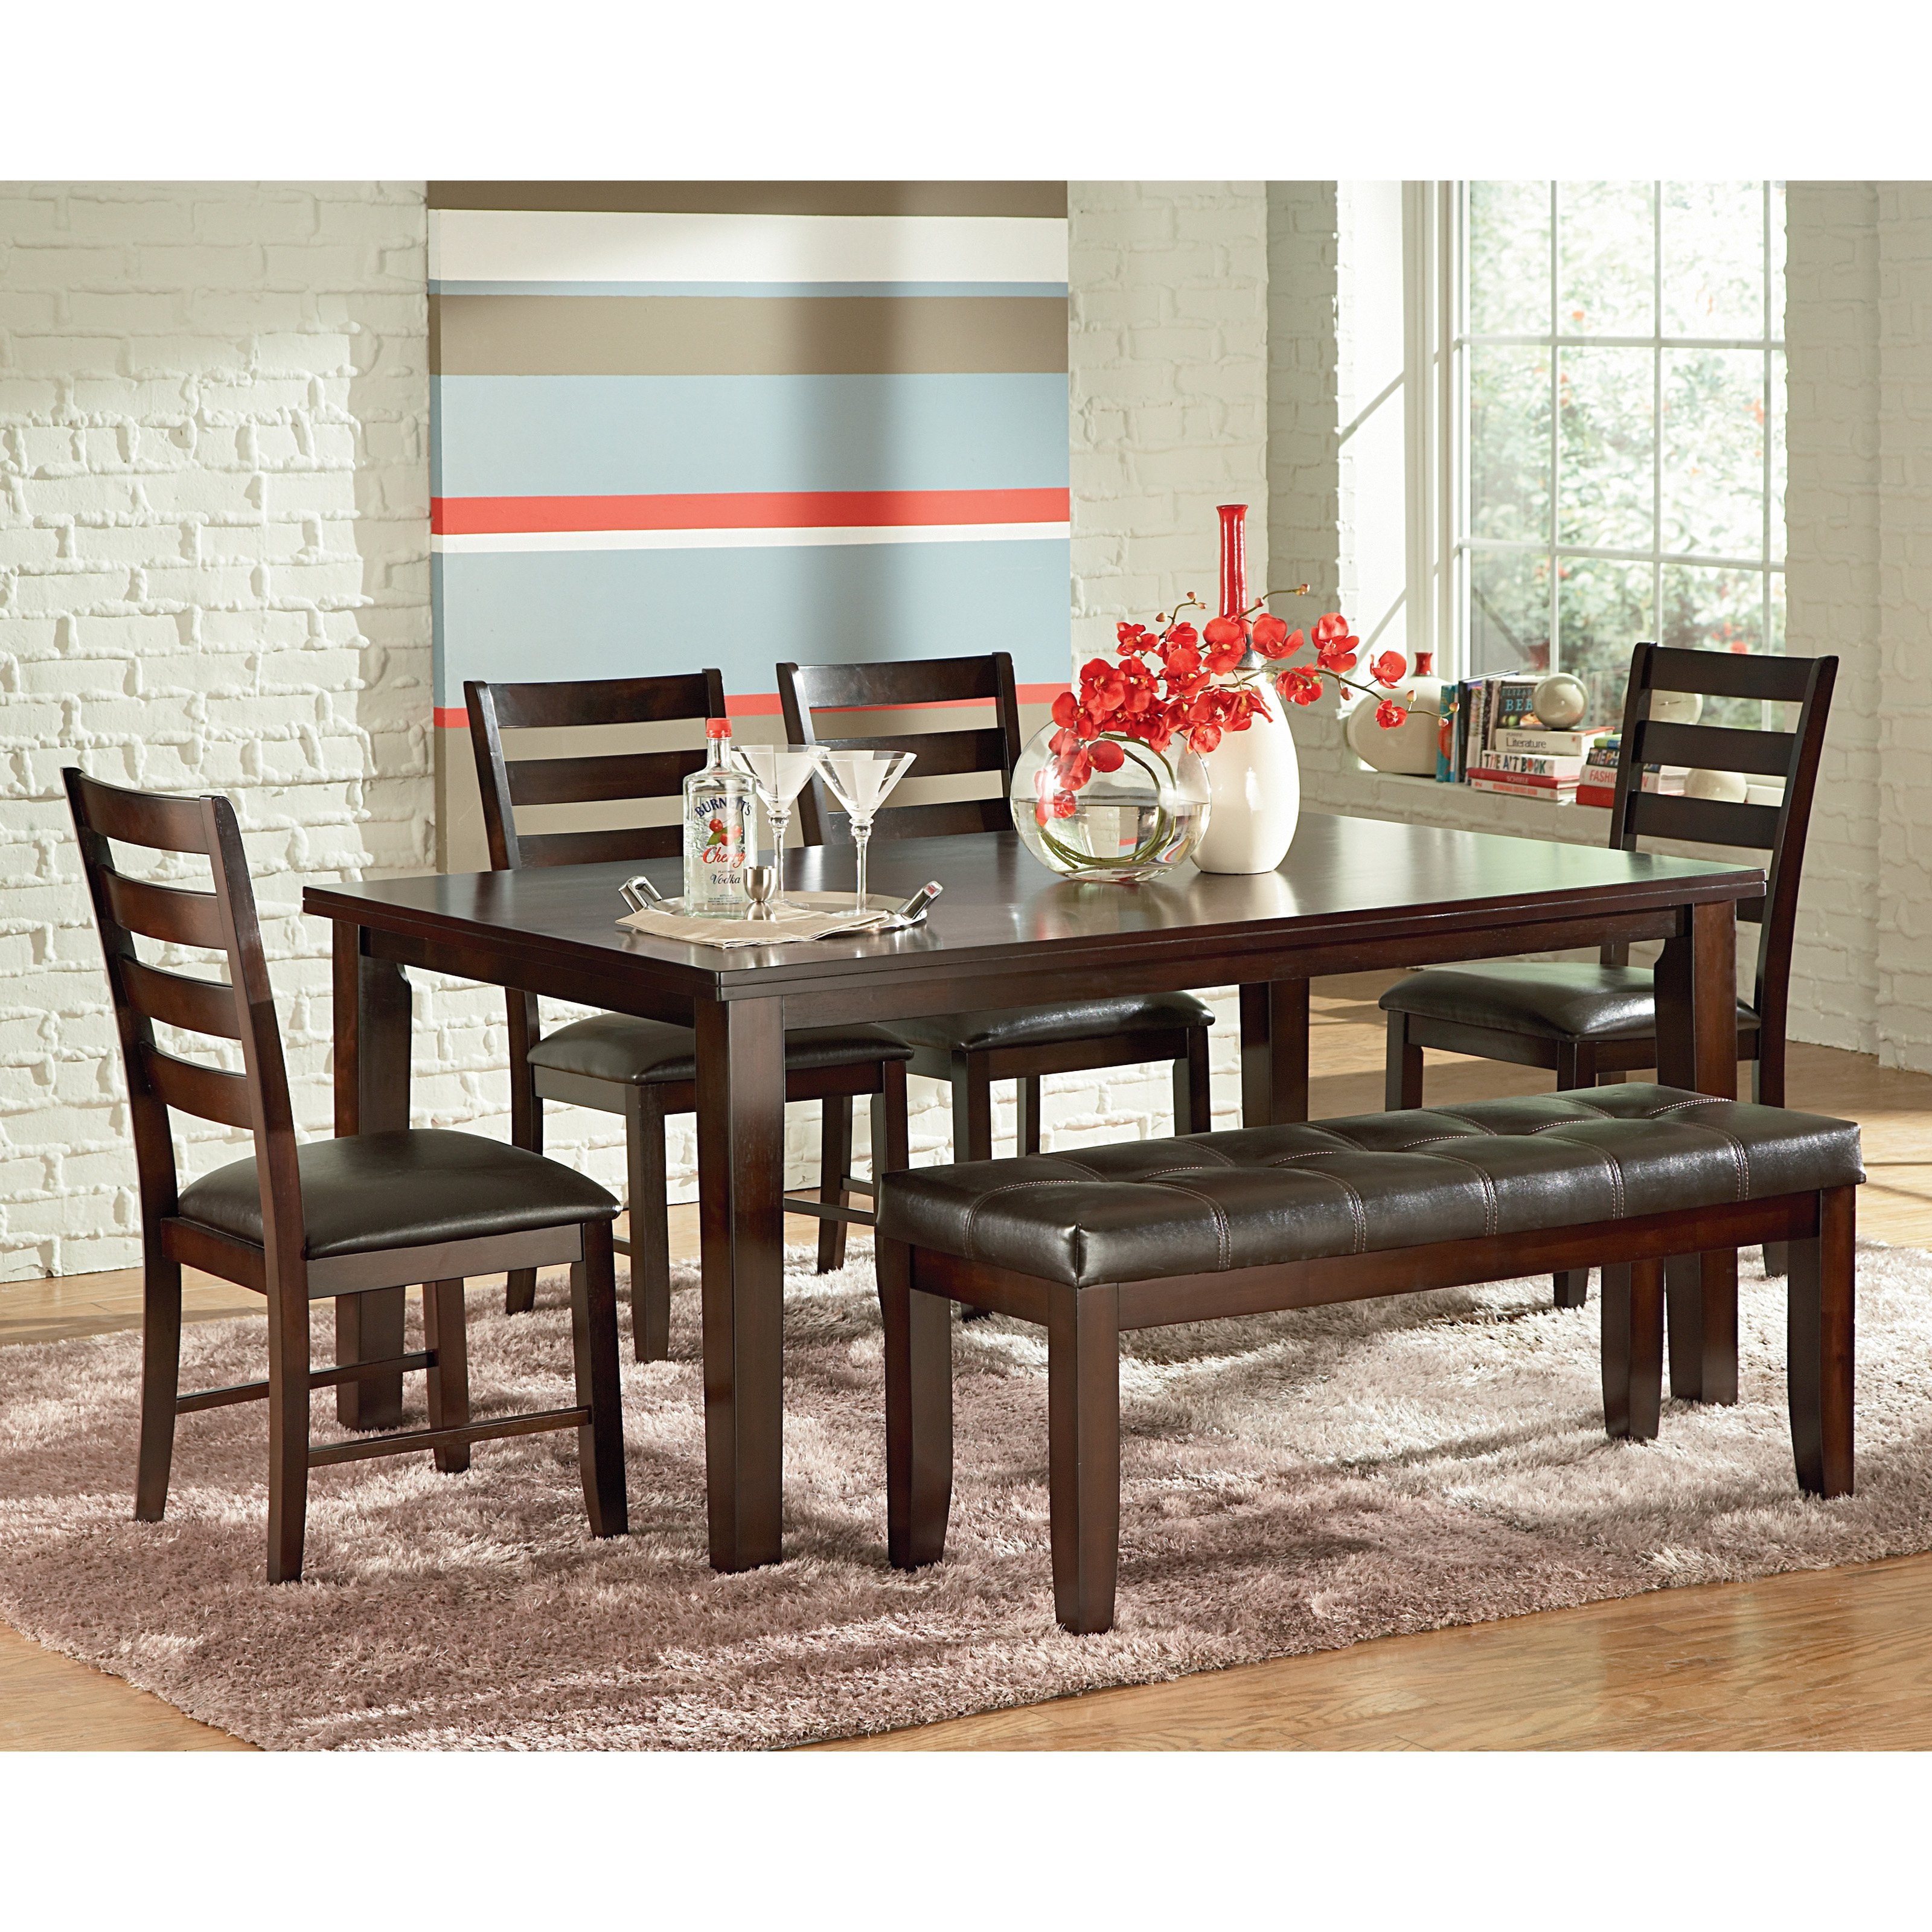 Steve Silver Sao Paulo Side Dining Chairs - Espresso - Set of 2